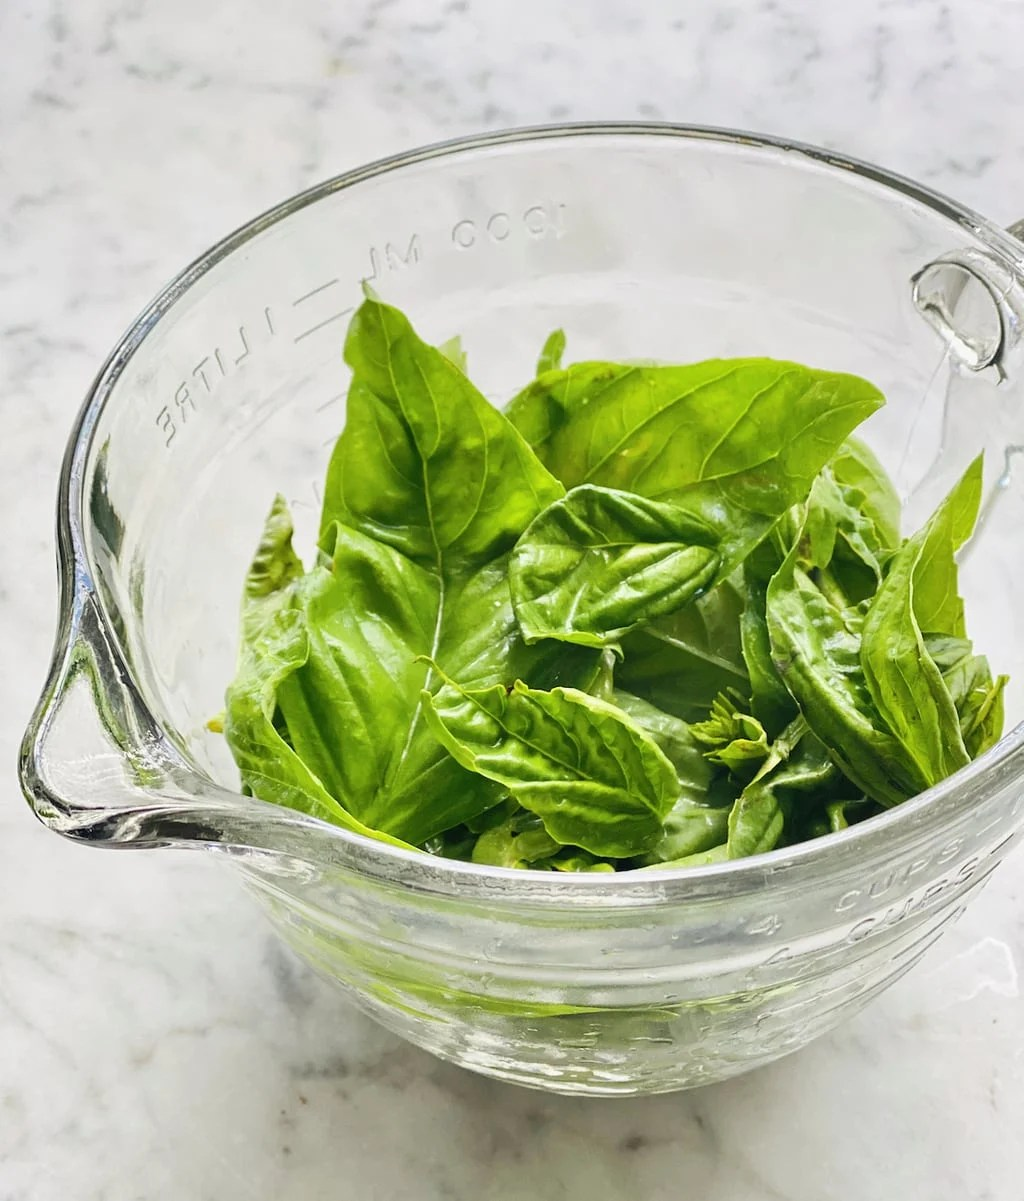 fresh basil leaves in a glass measuring cup